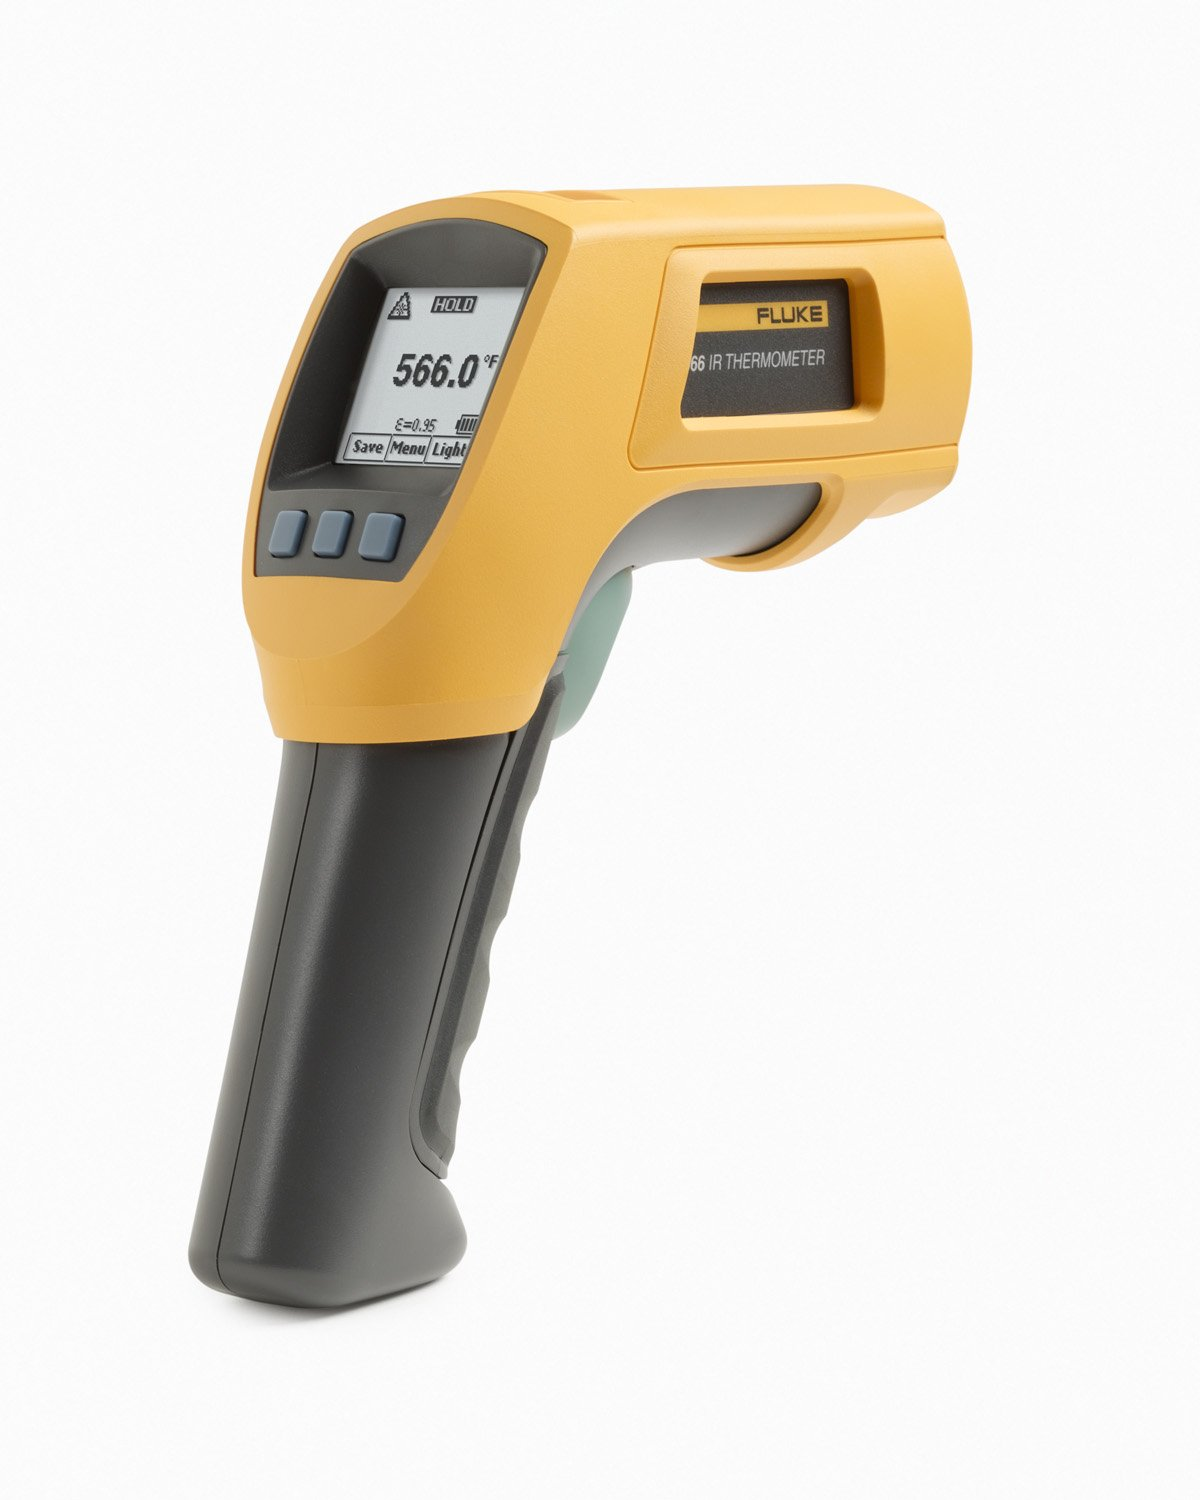 Fluke 566  Dual Infrared Thermometer, -40 to +1202 Degree F Range, Contact/Non Contact by Fluke (Image #7)